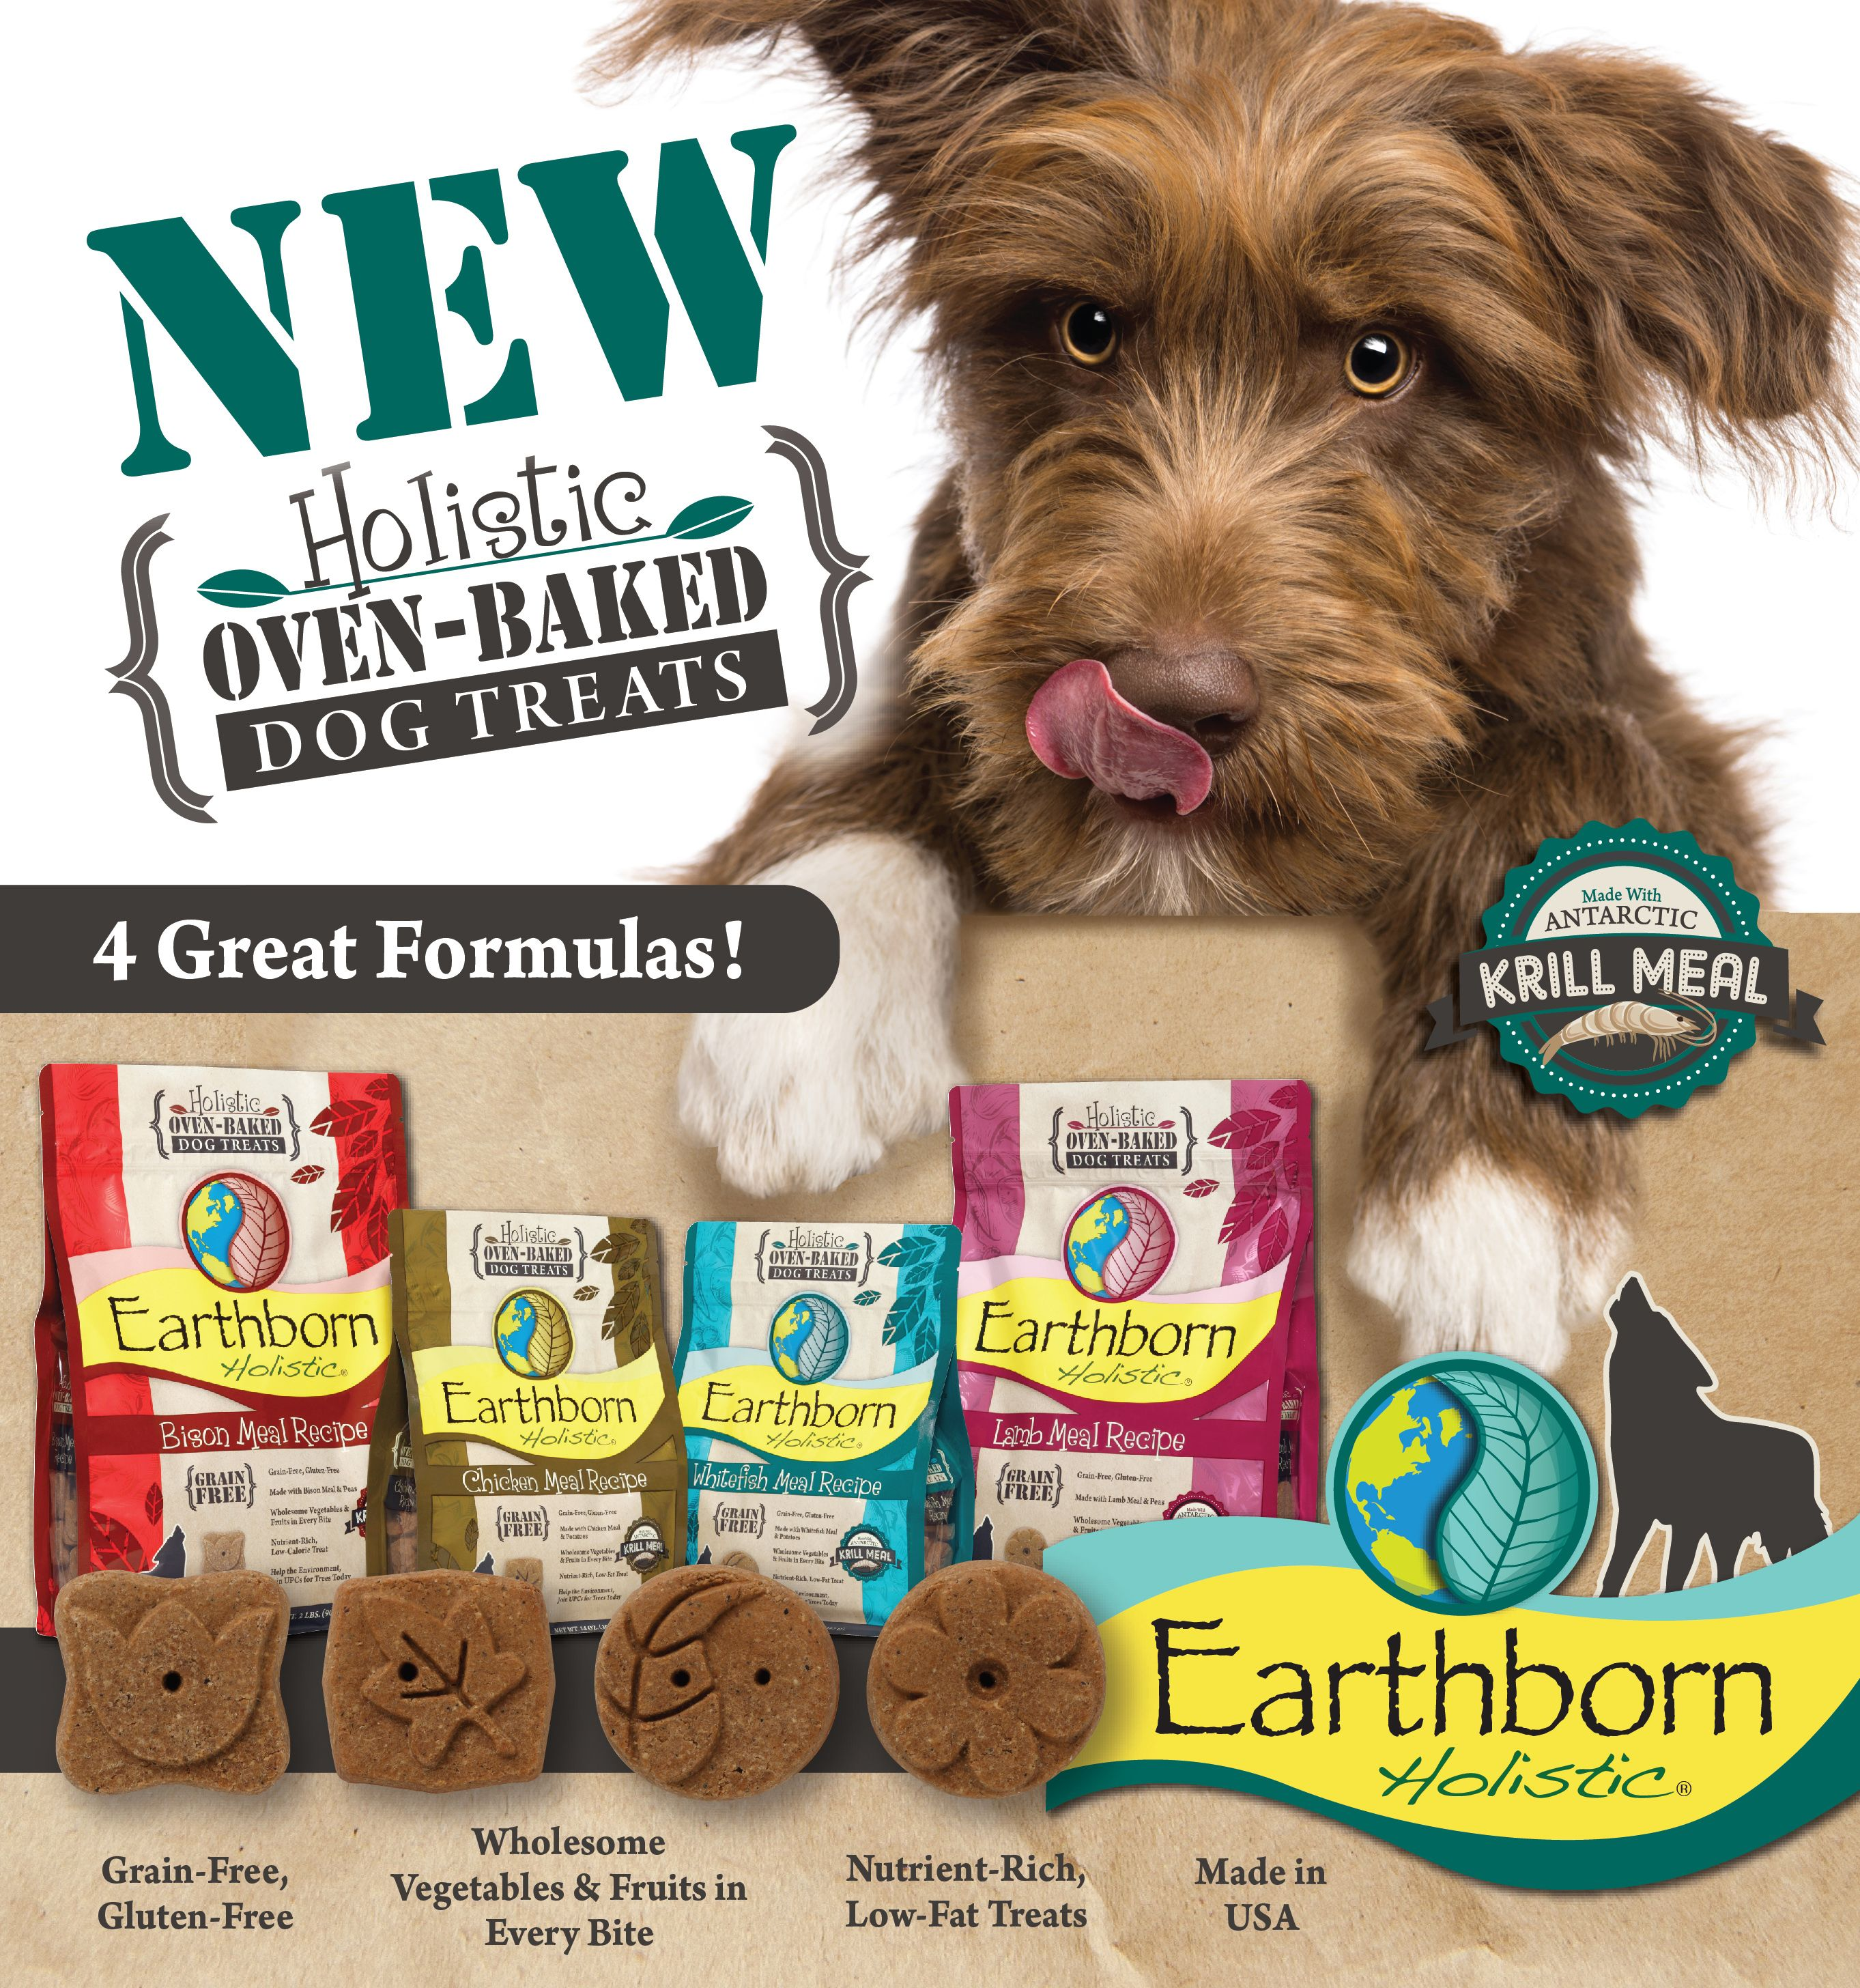 NEW...Earthborn Holistic® OvenBaked, GrainFree Dog